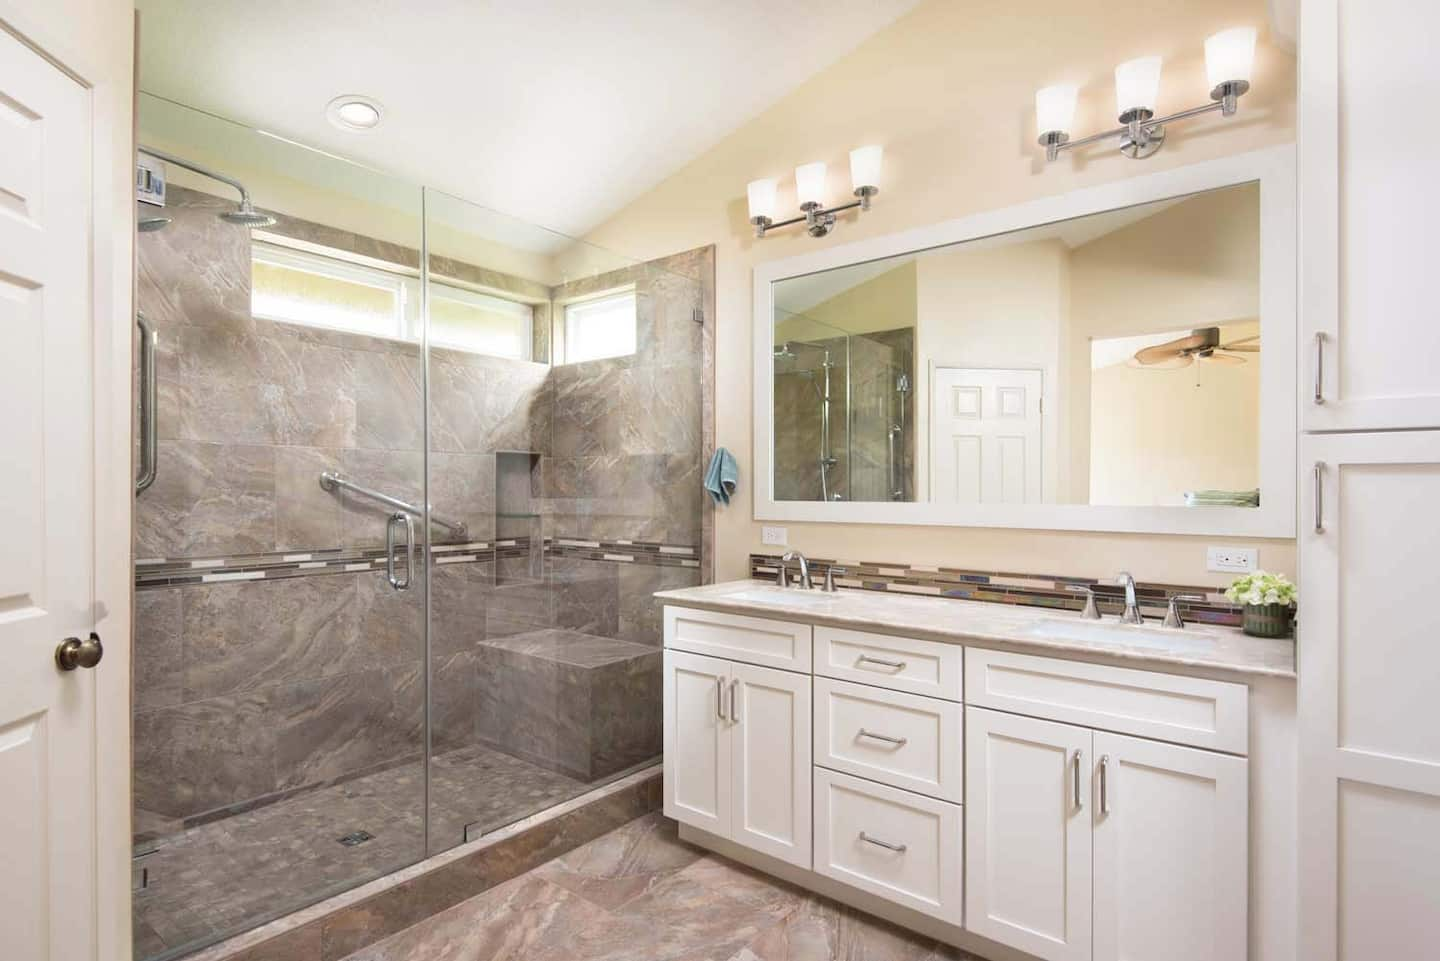 Bathroom Remodels Under 10000 how much does a bathroom remodel cost? | angie's list